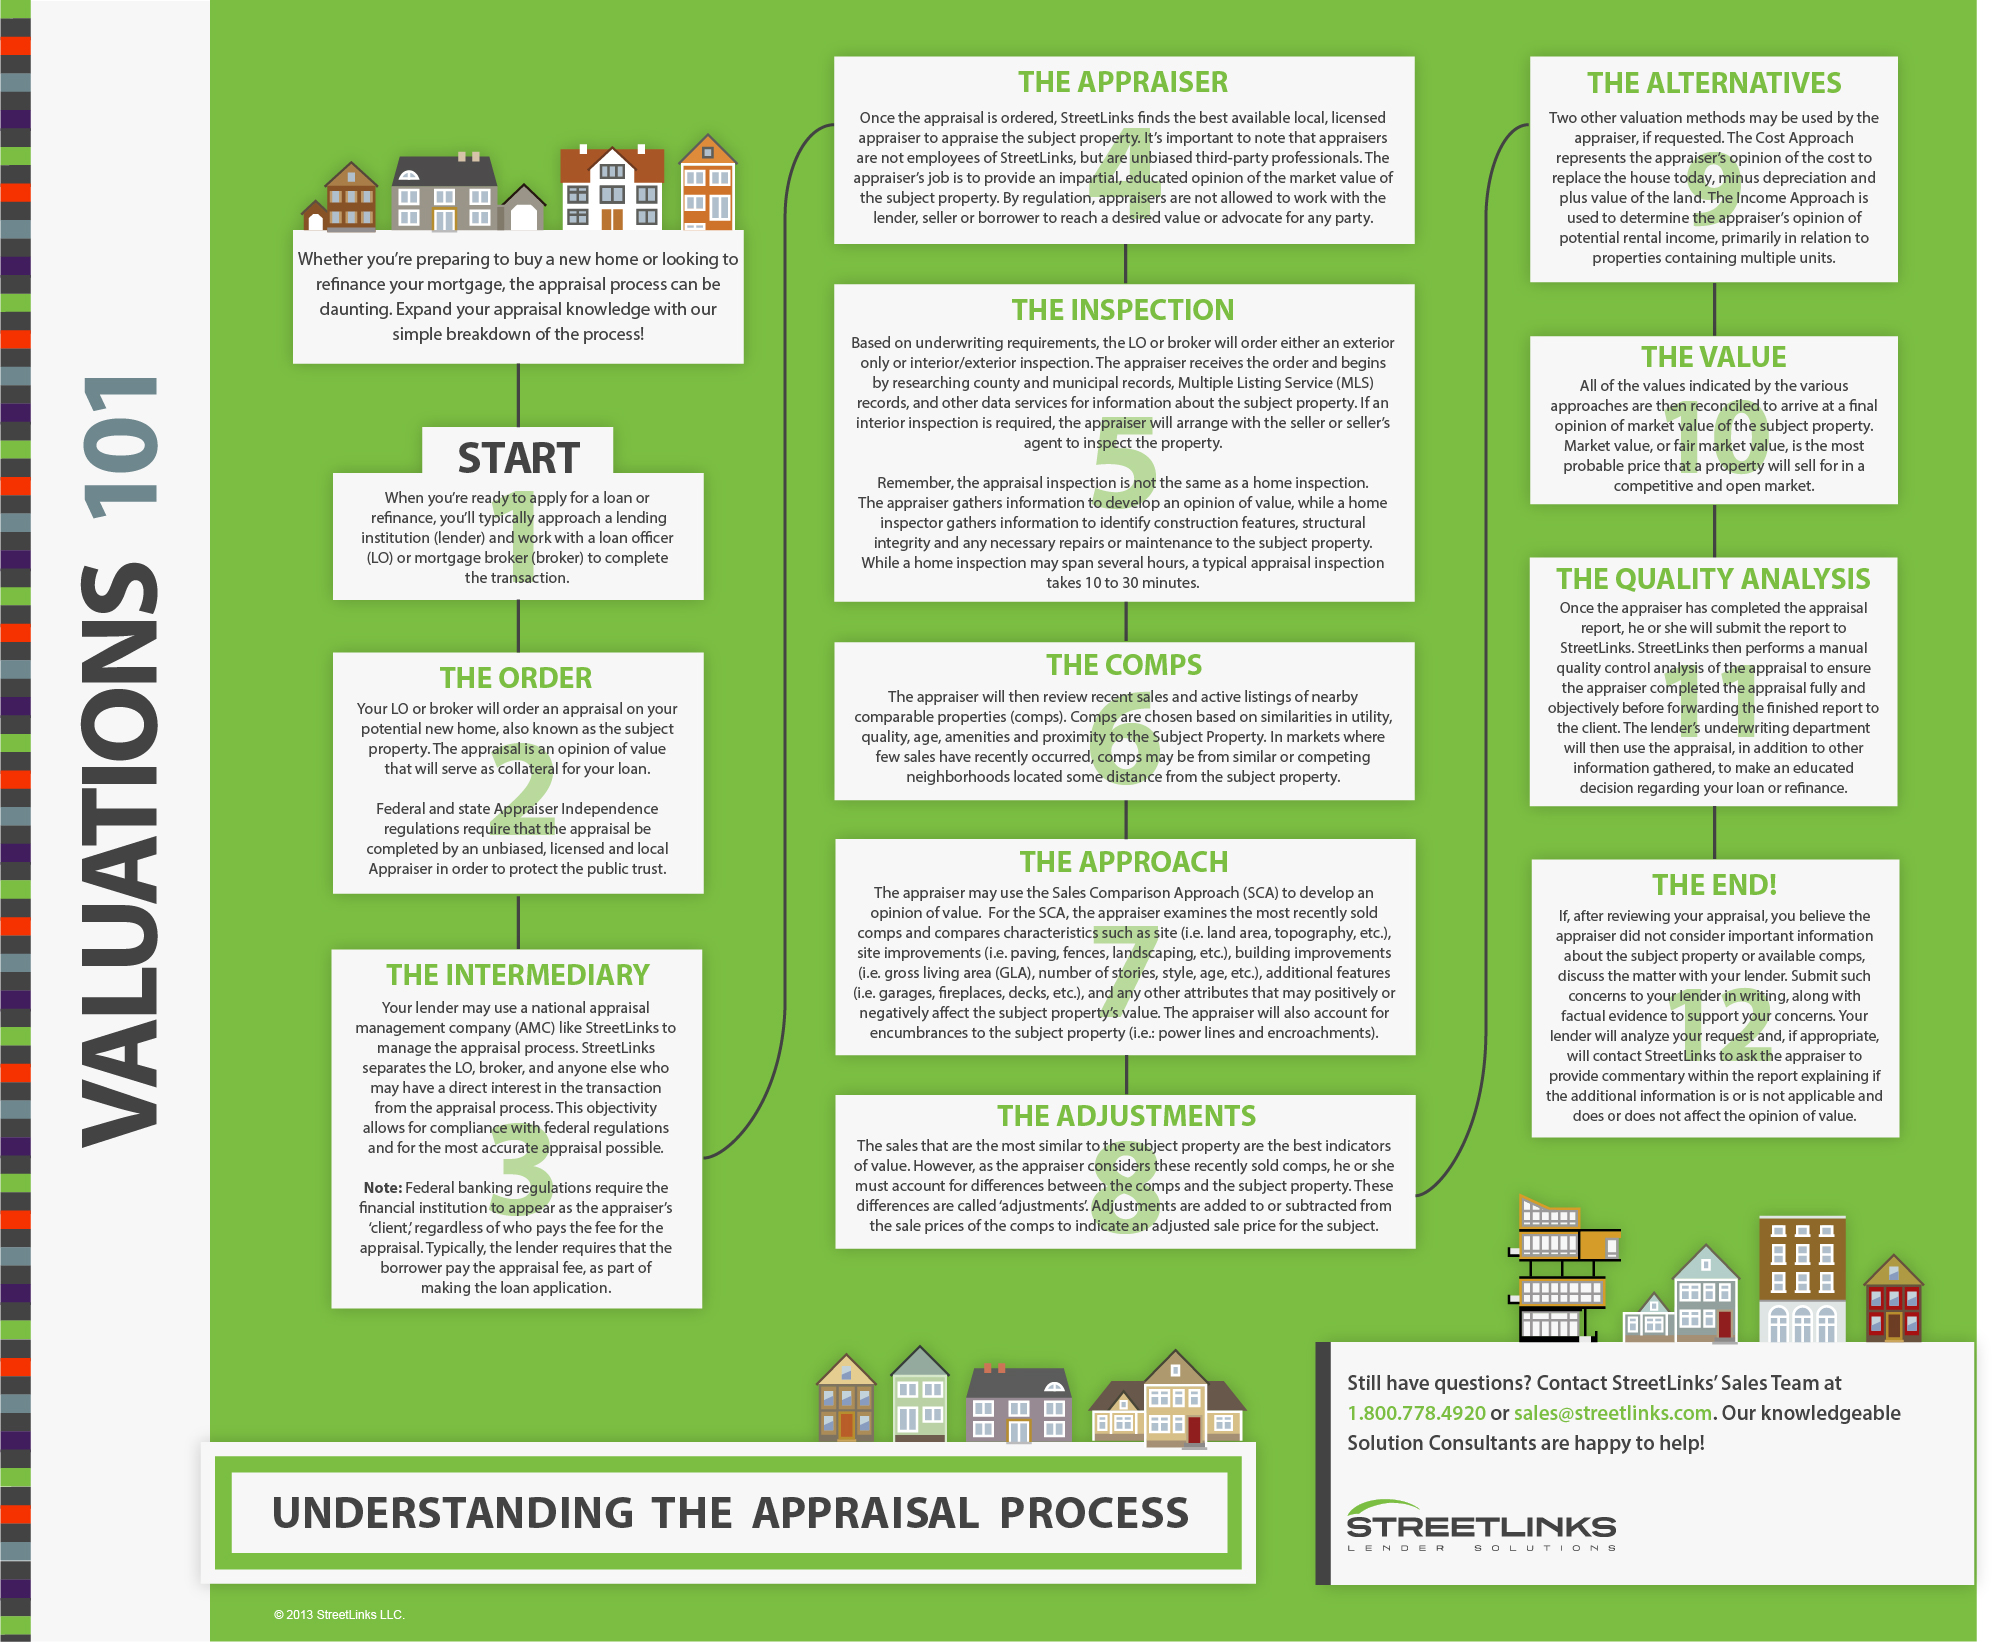 The real estate appraisal process Custom paper Example - August 2019